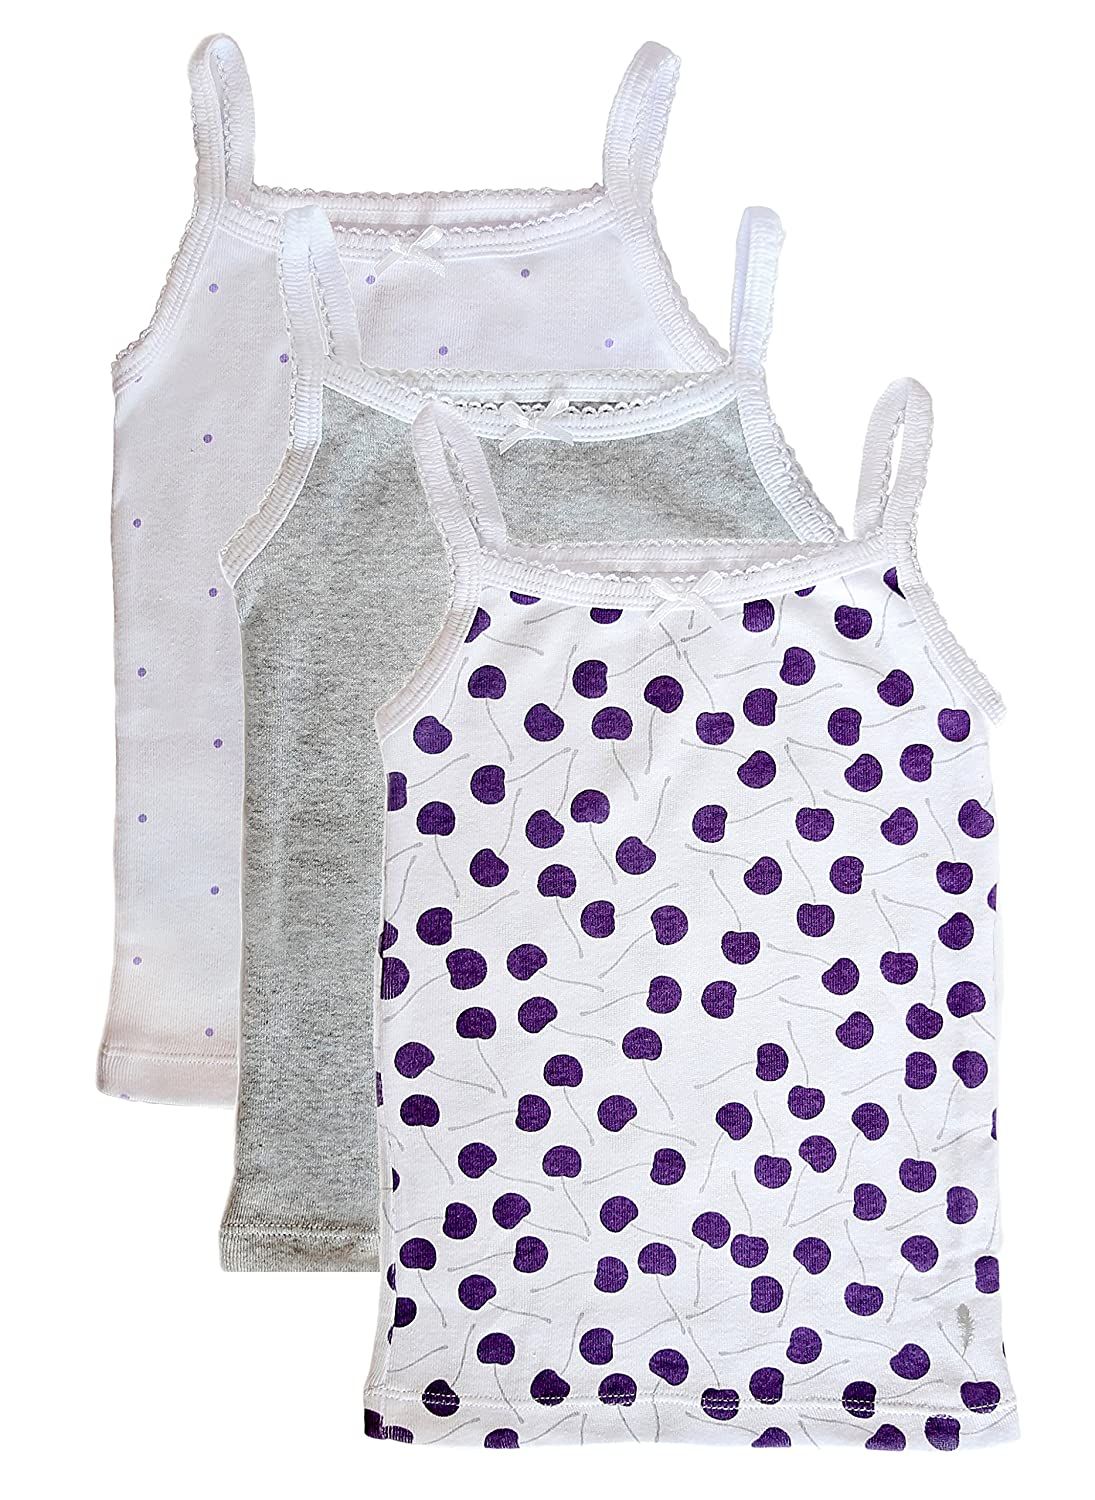 Feathers Girls Cherry Print Set Tagless Cami Super Soft Undershirts (3/pack)